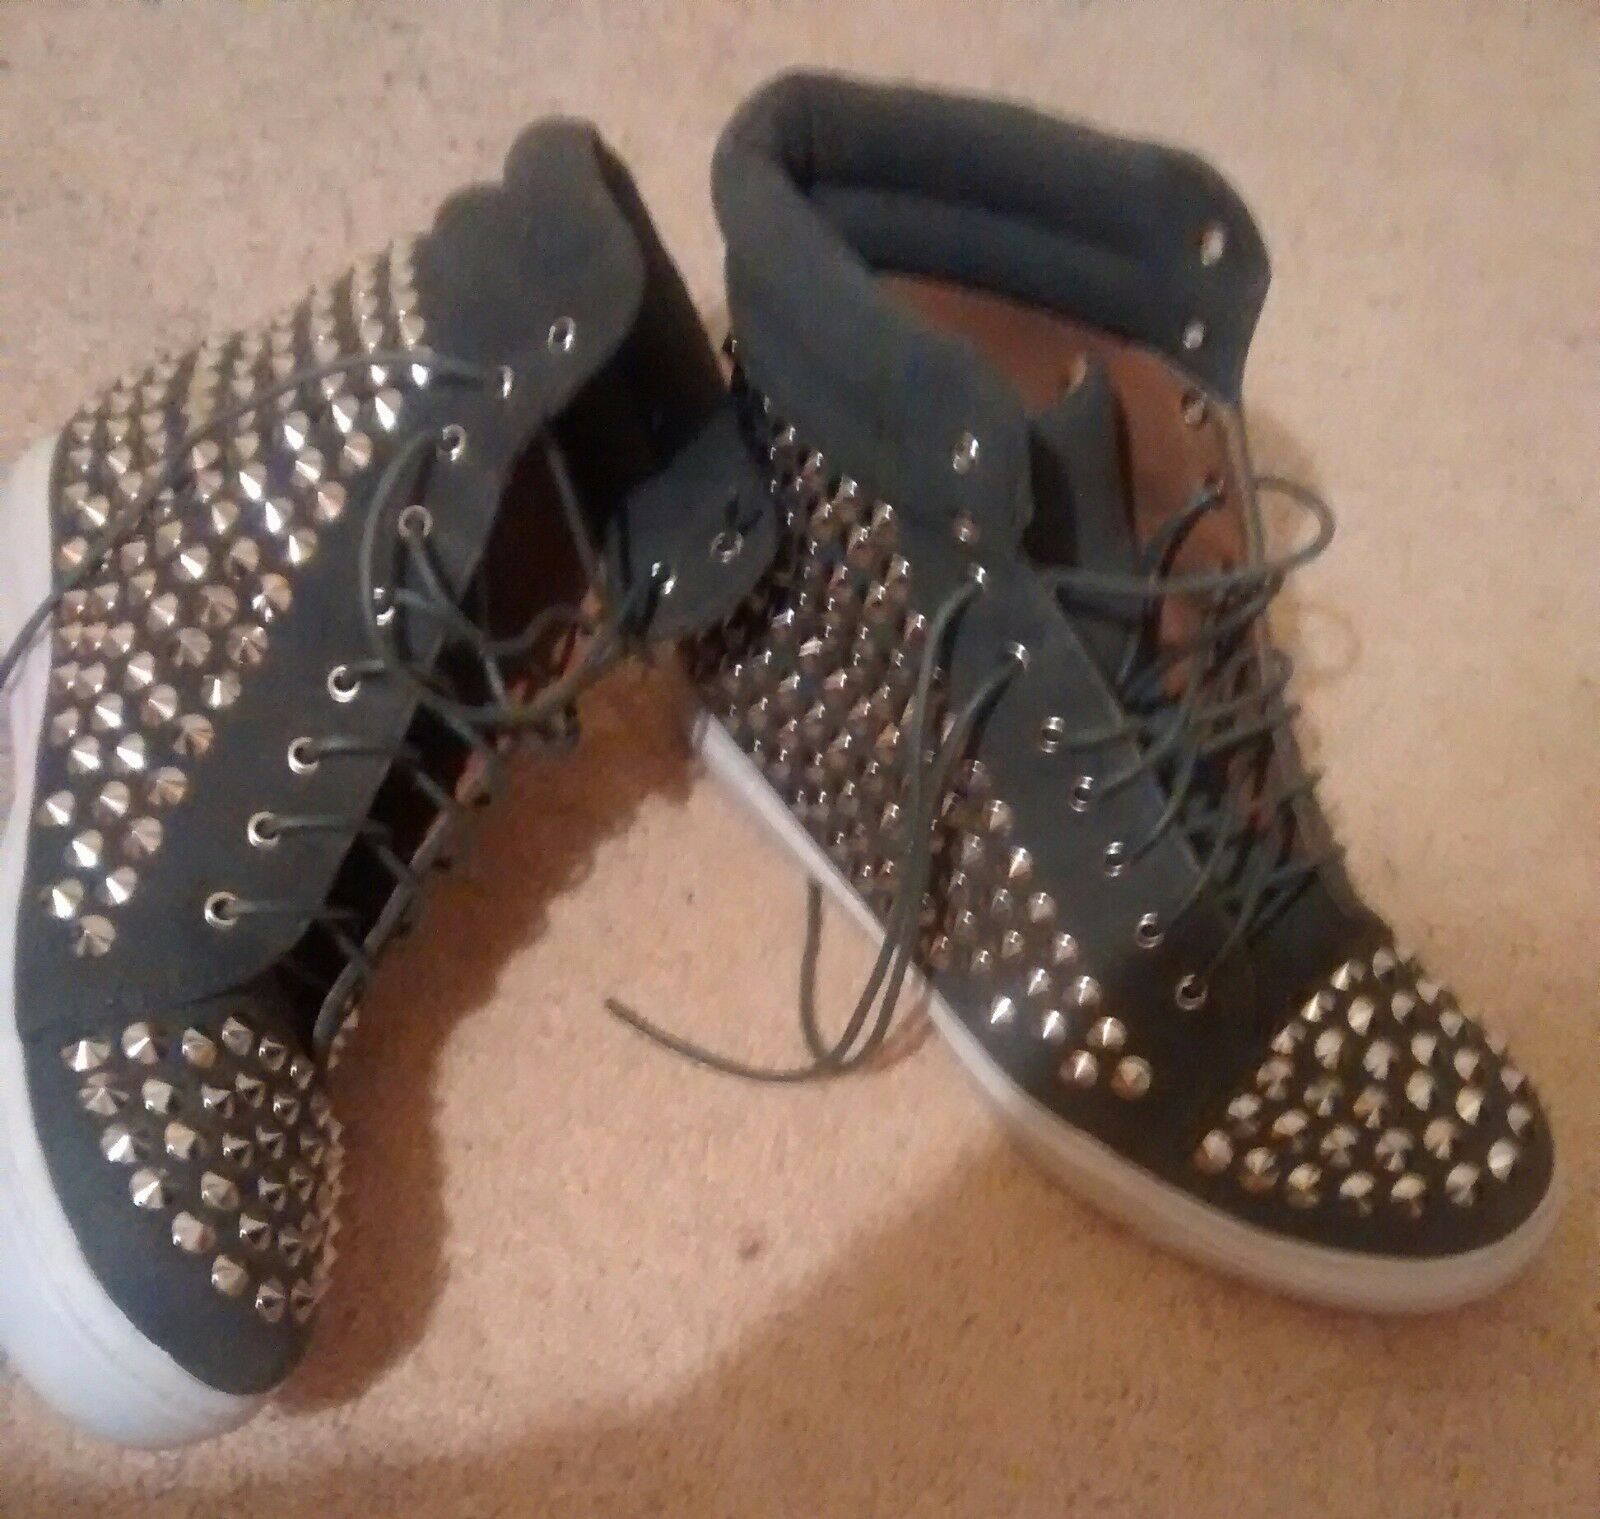 Iconique 7 40 Jeffrey Campbell Alva en daim gris Rivets Studs Baskets Montantes